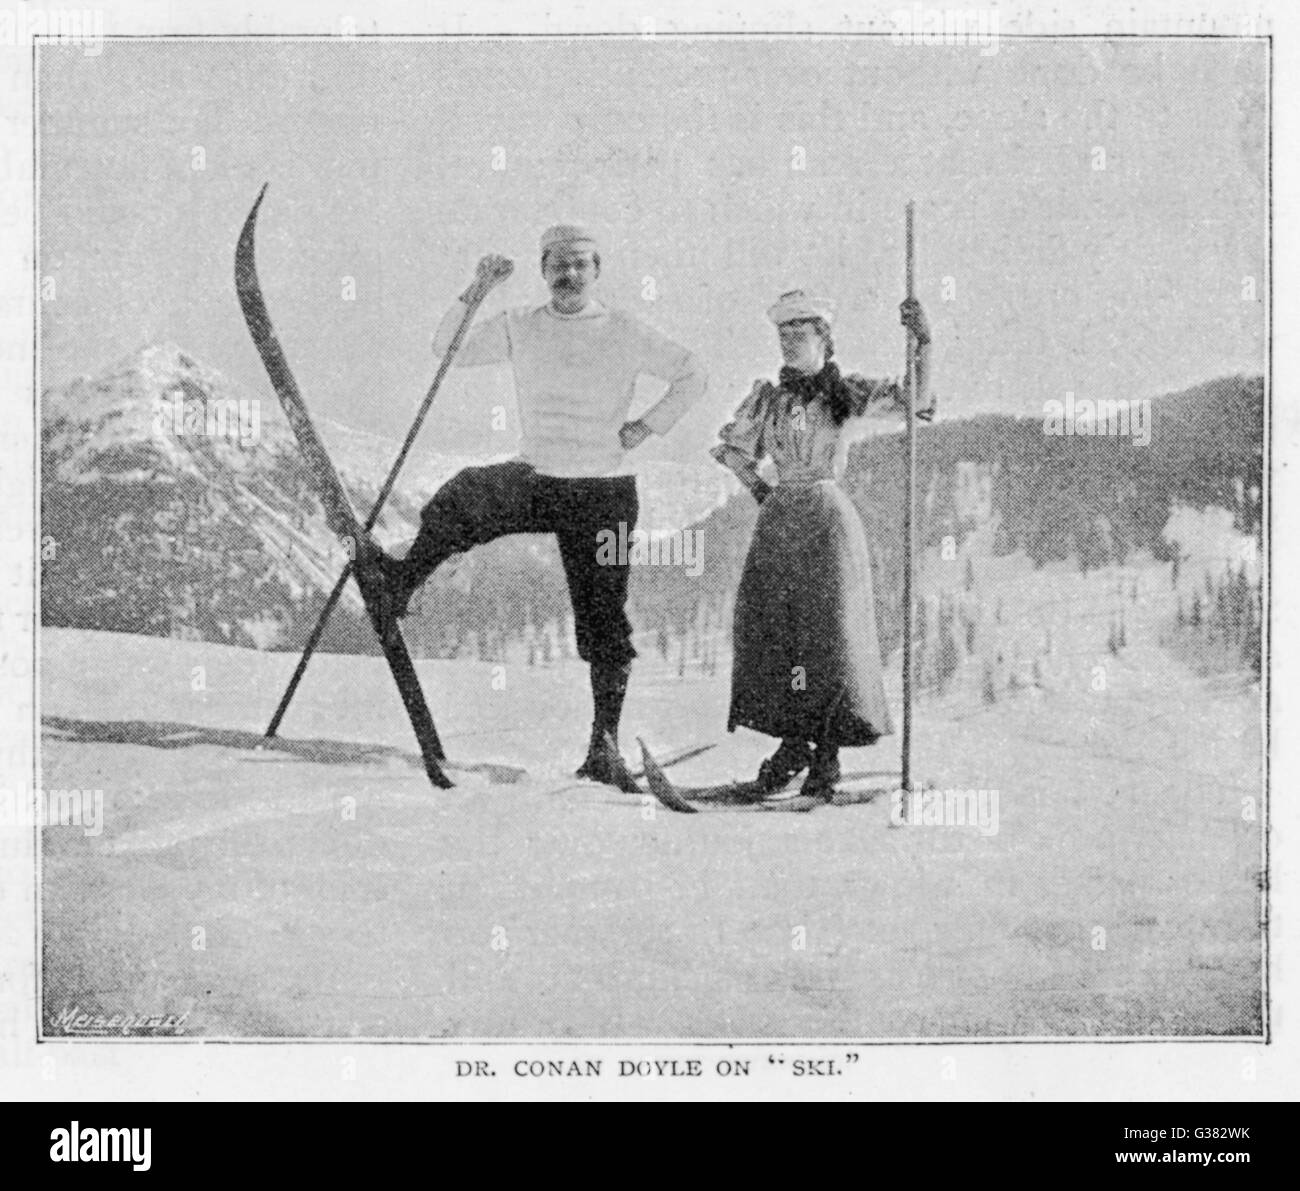 SIR ARTHUR CONAN DOYLE  In comical pose on skis in the  Alps, with female companion.       Date: 1894 - Stock Image